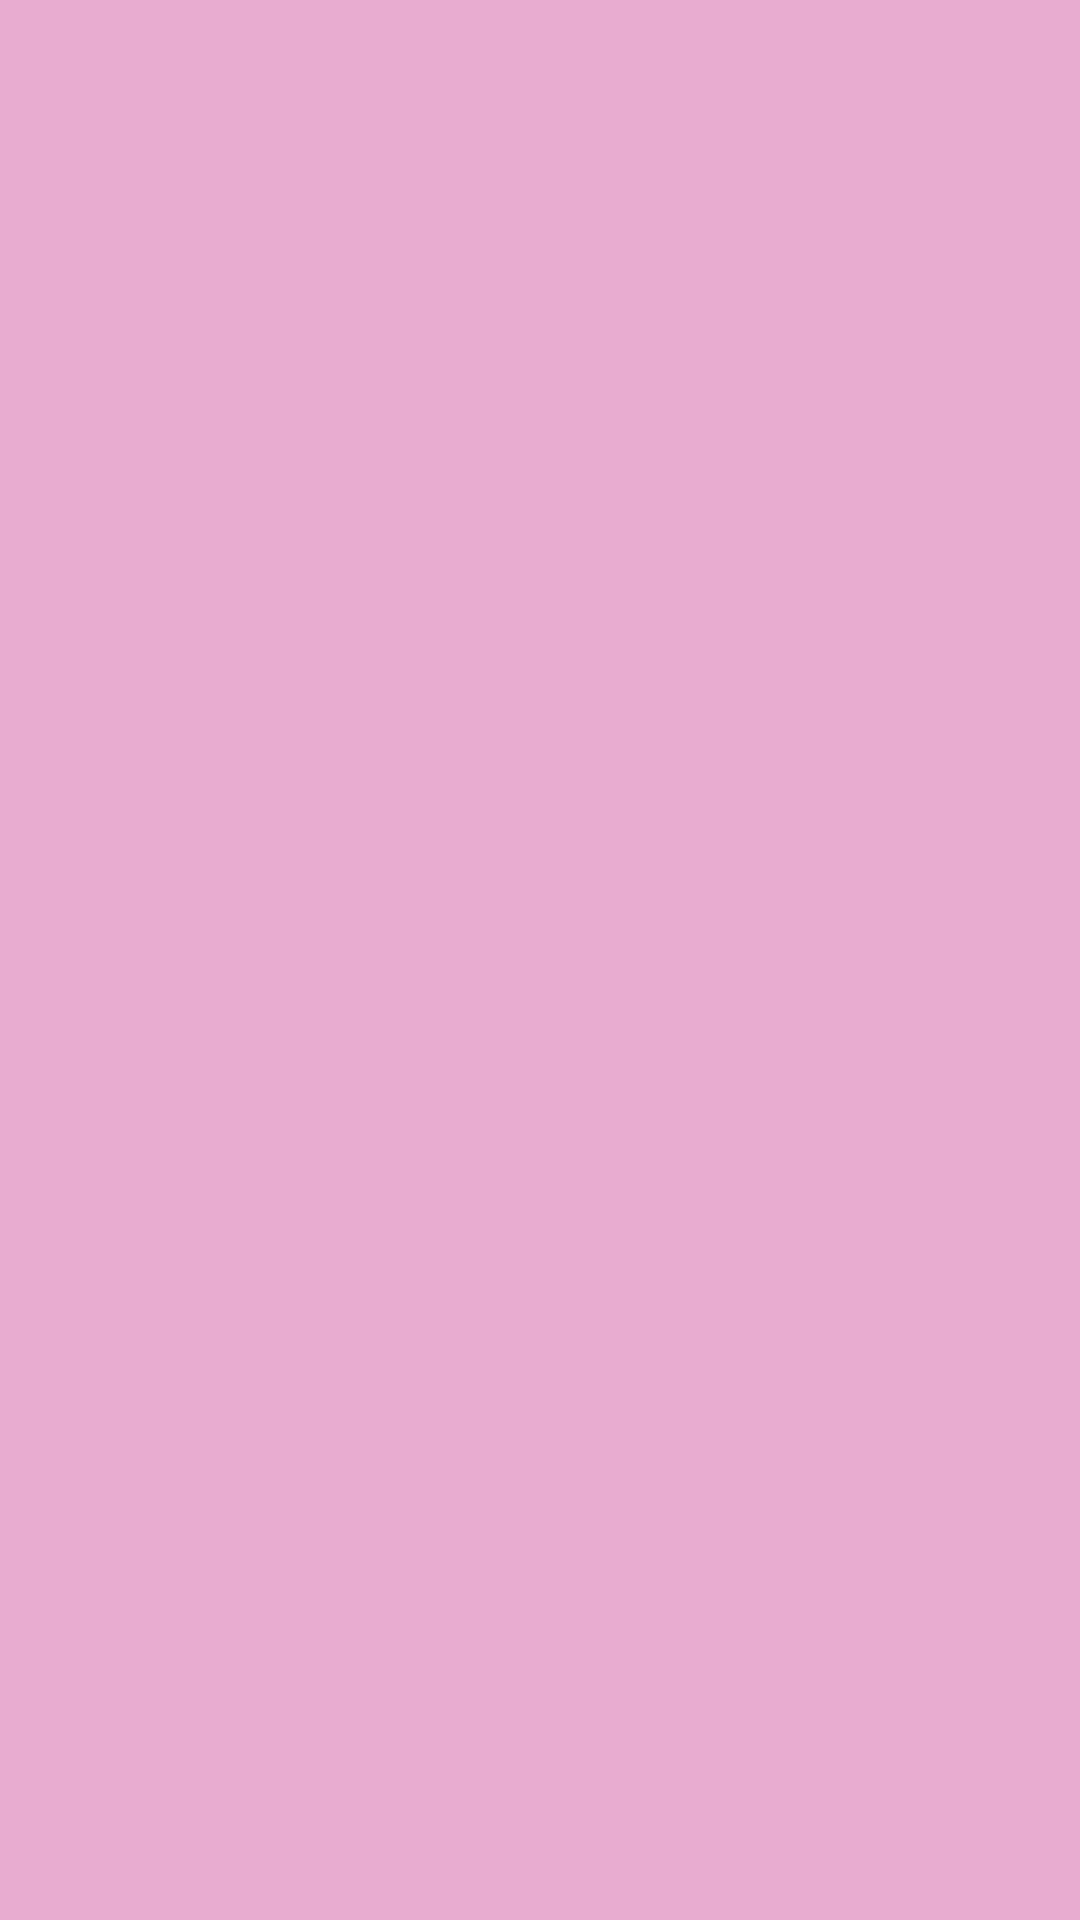 1080x1920 Pink Pearl Solid Color Background